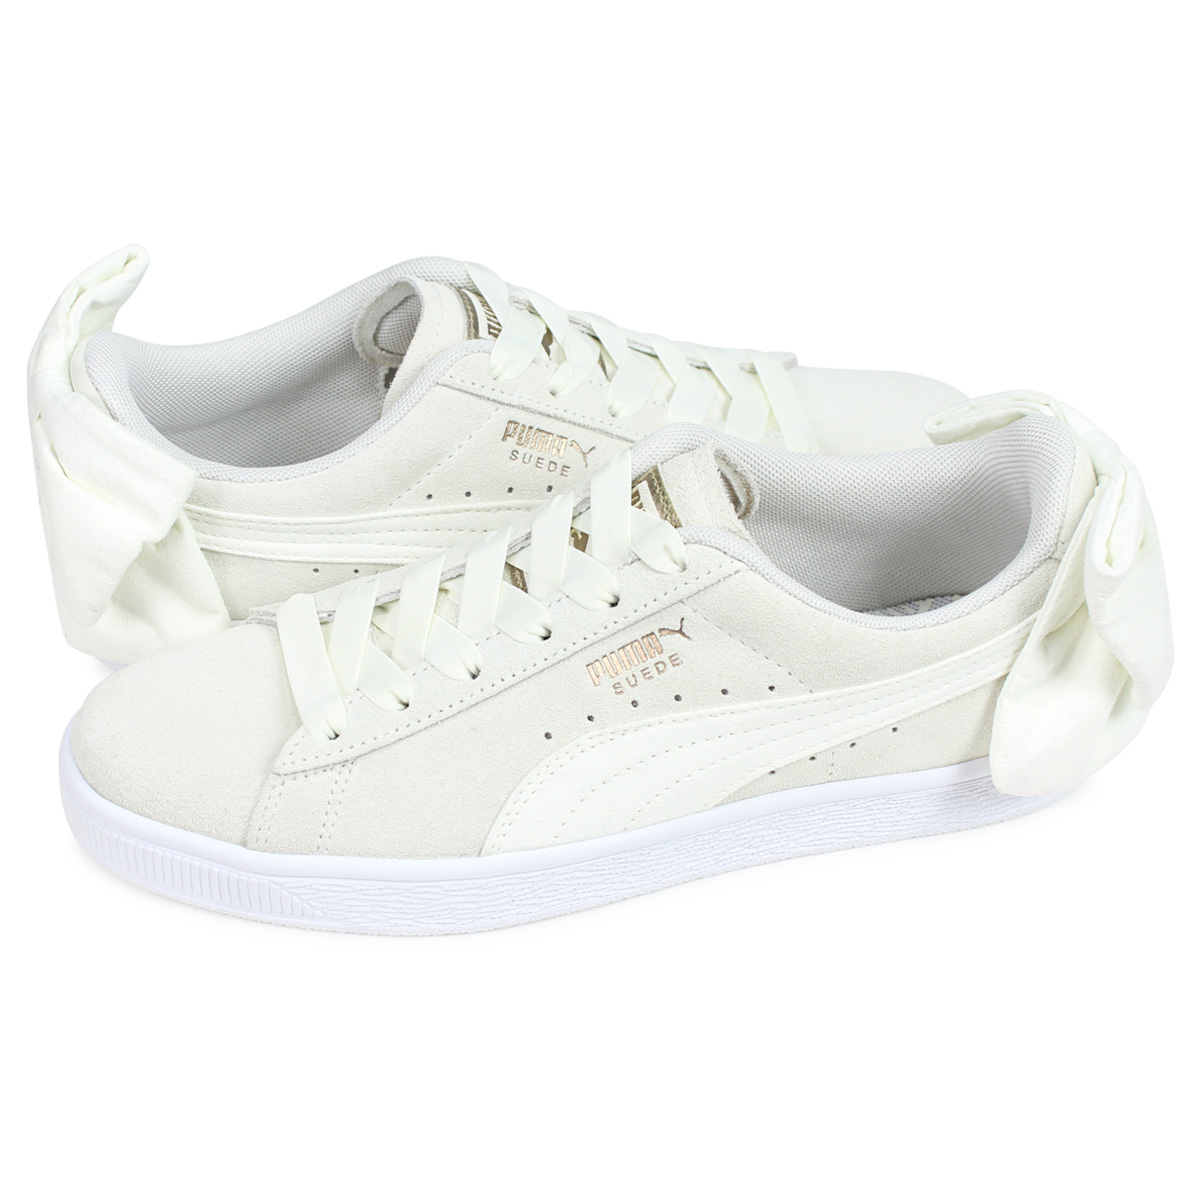 new product b4584 373b8 PUMA WMNS SUEDE BOW Puma suede bow tie sneakers Lady's off-white 36677902